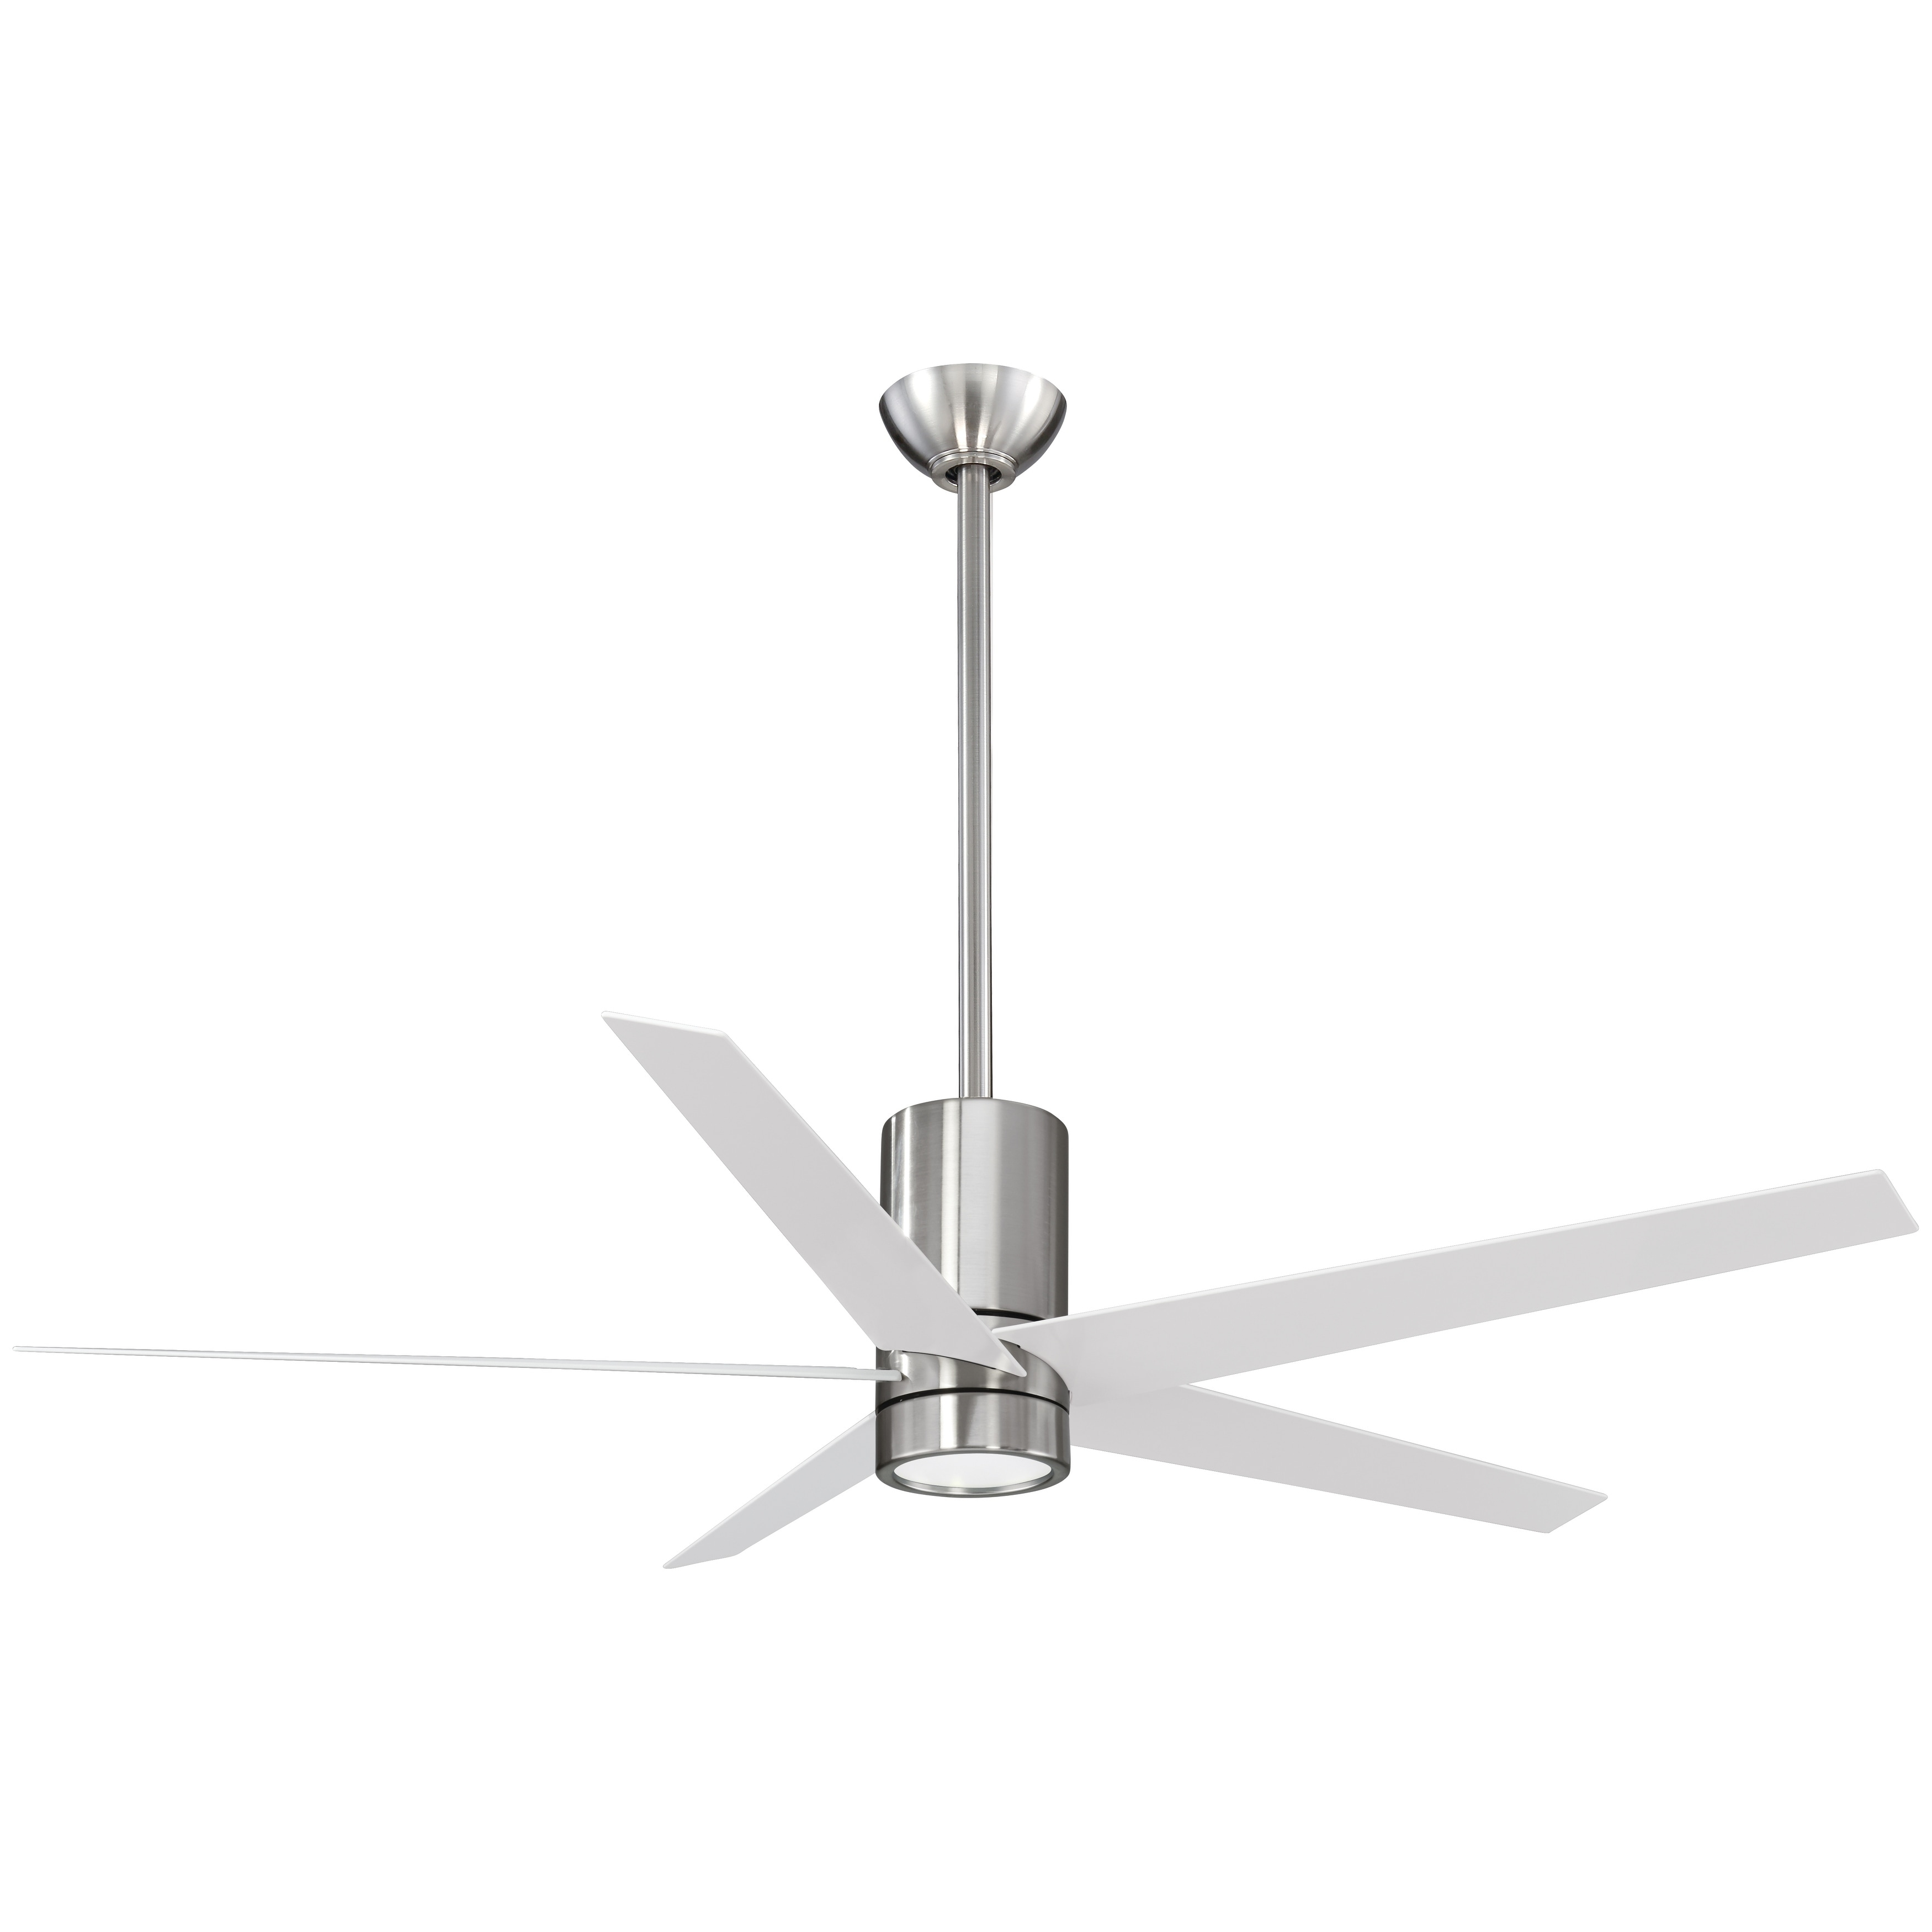 Led Ceiling Fan In Brushed Nickel